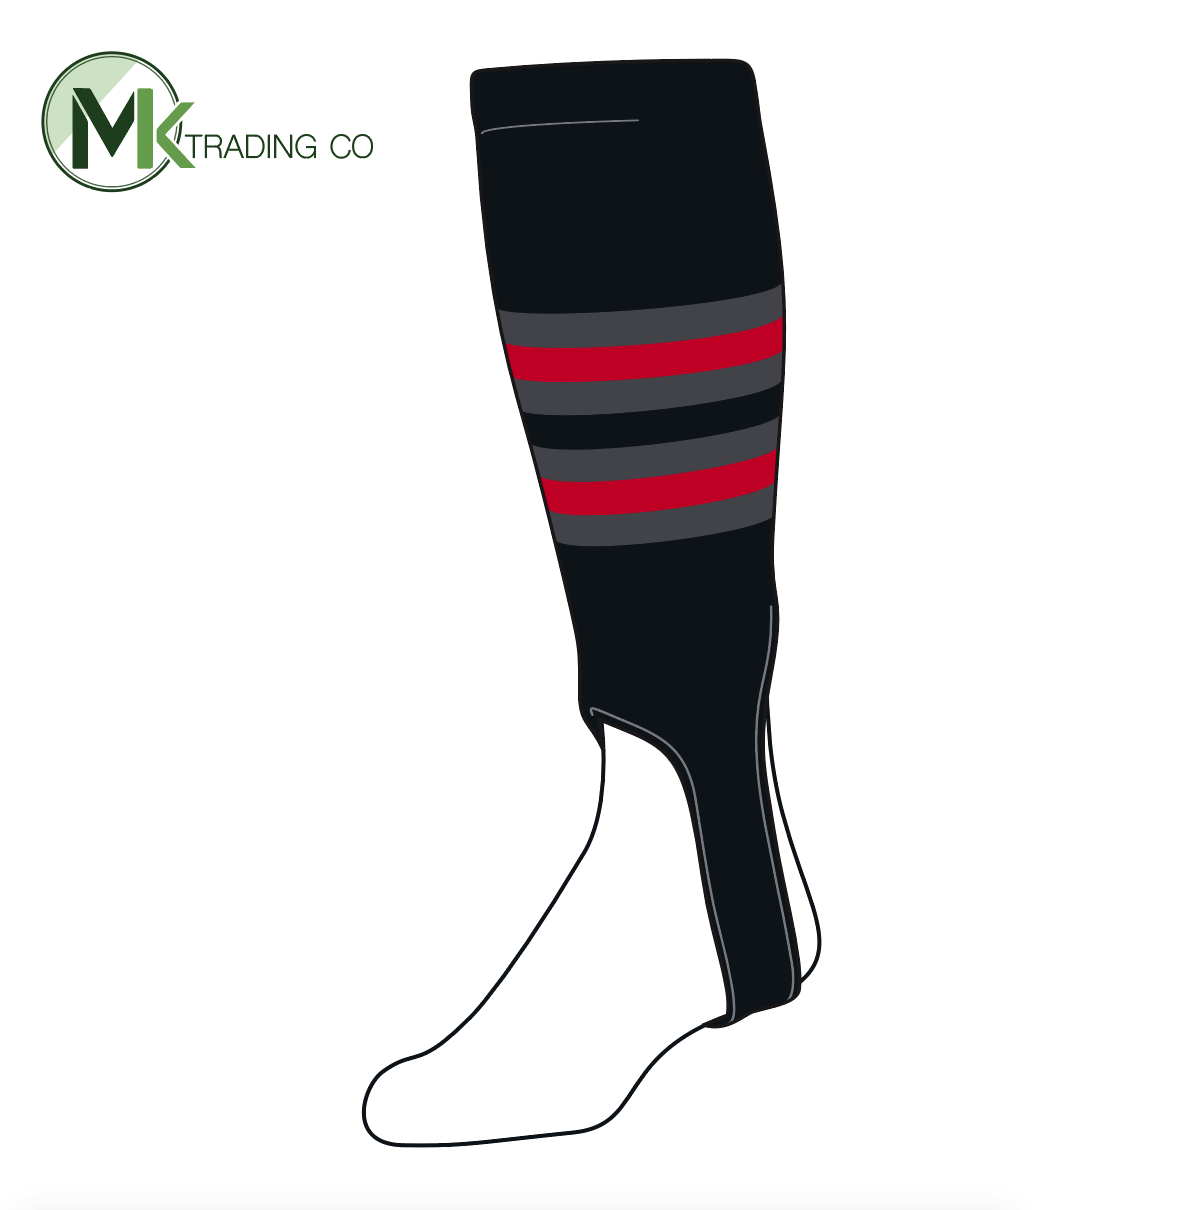 TCK Baseball Stirrups Medium (200I, 5in) Black, Graphite, Red